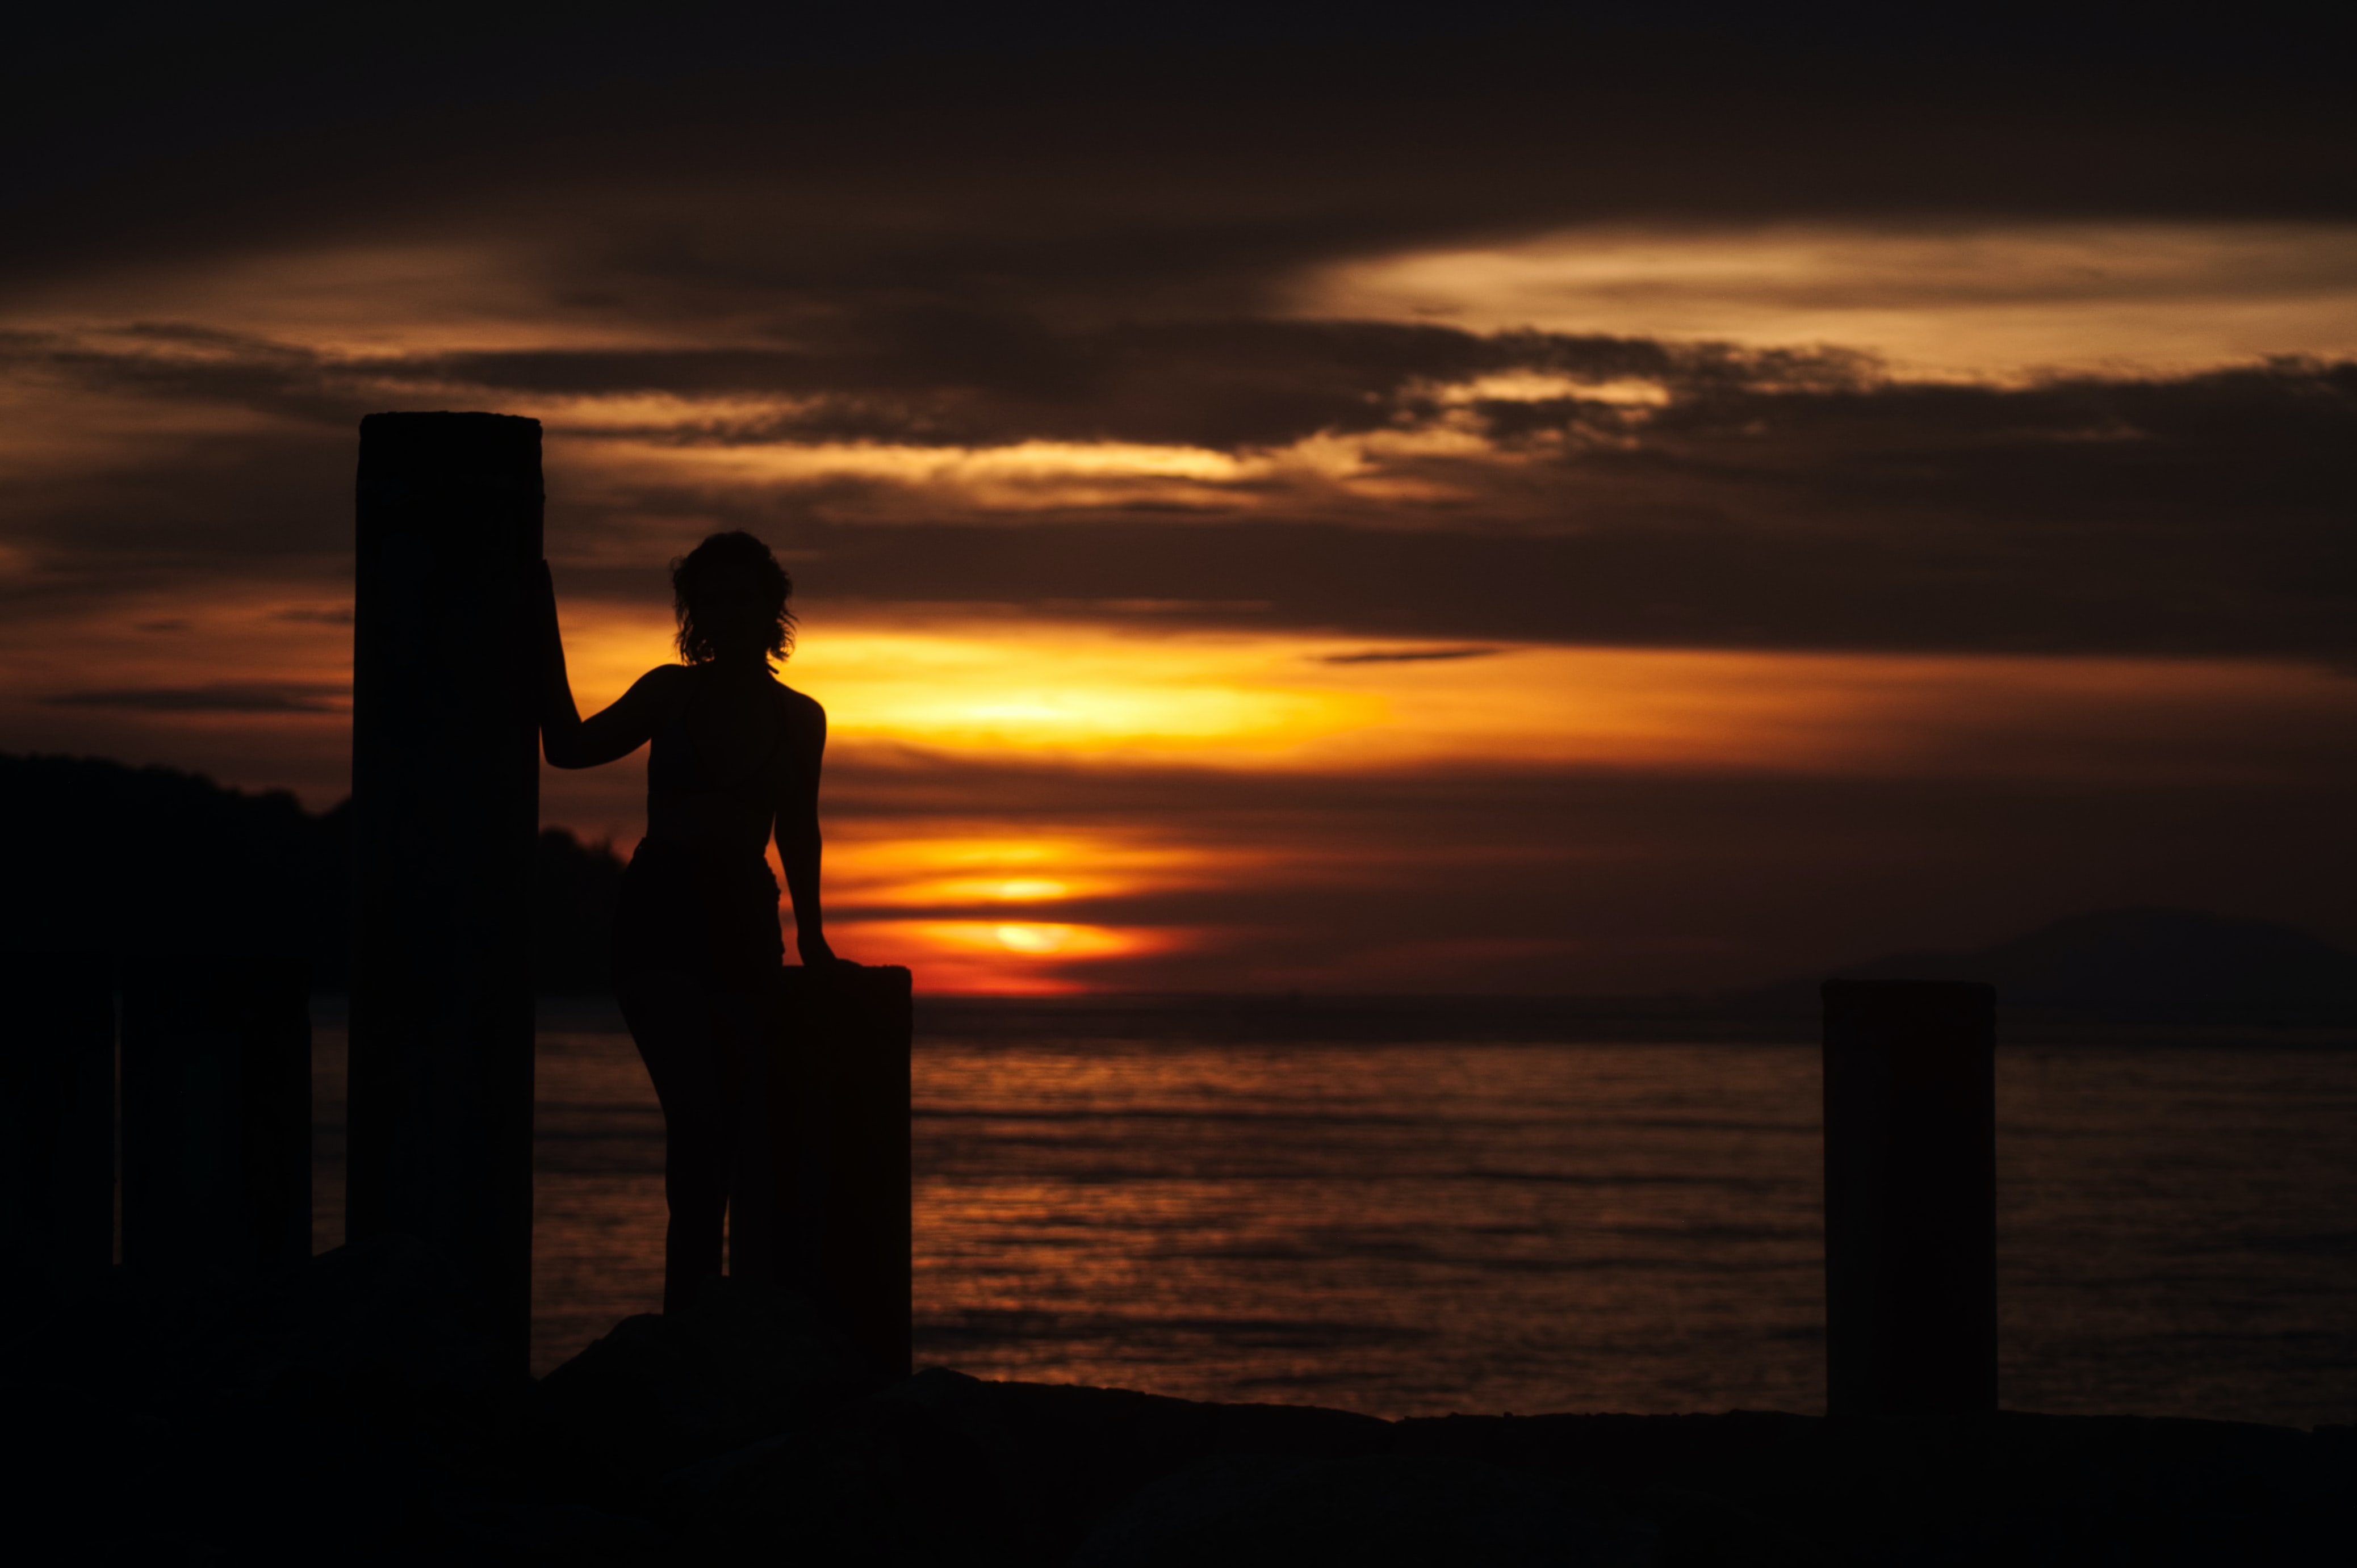 silhouette of woman on dock during orange sunset